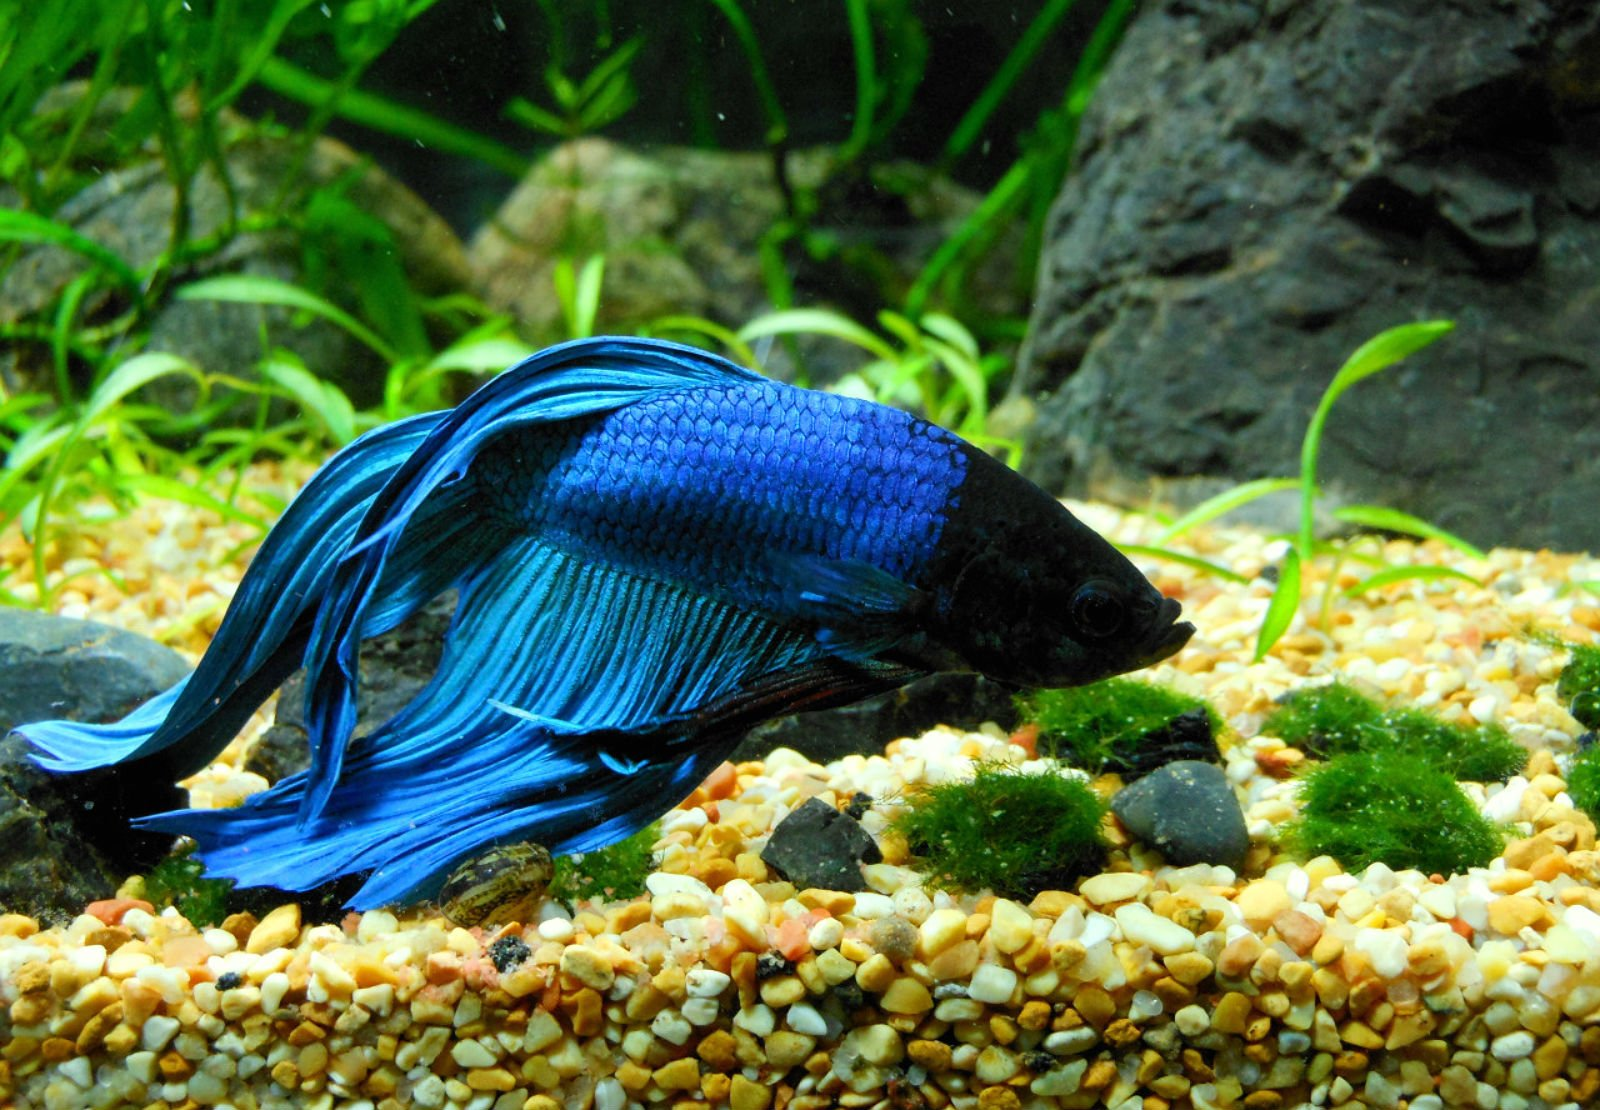 BETTA Siamese Fighting Fish underwater tropical psychedelic wallpaper 1600x1110